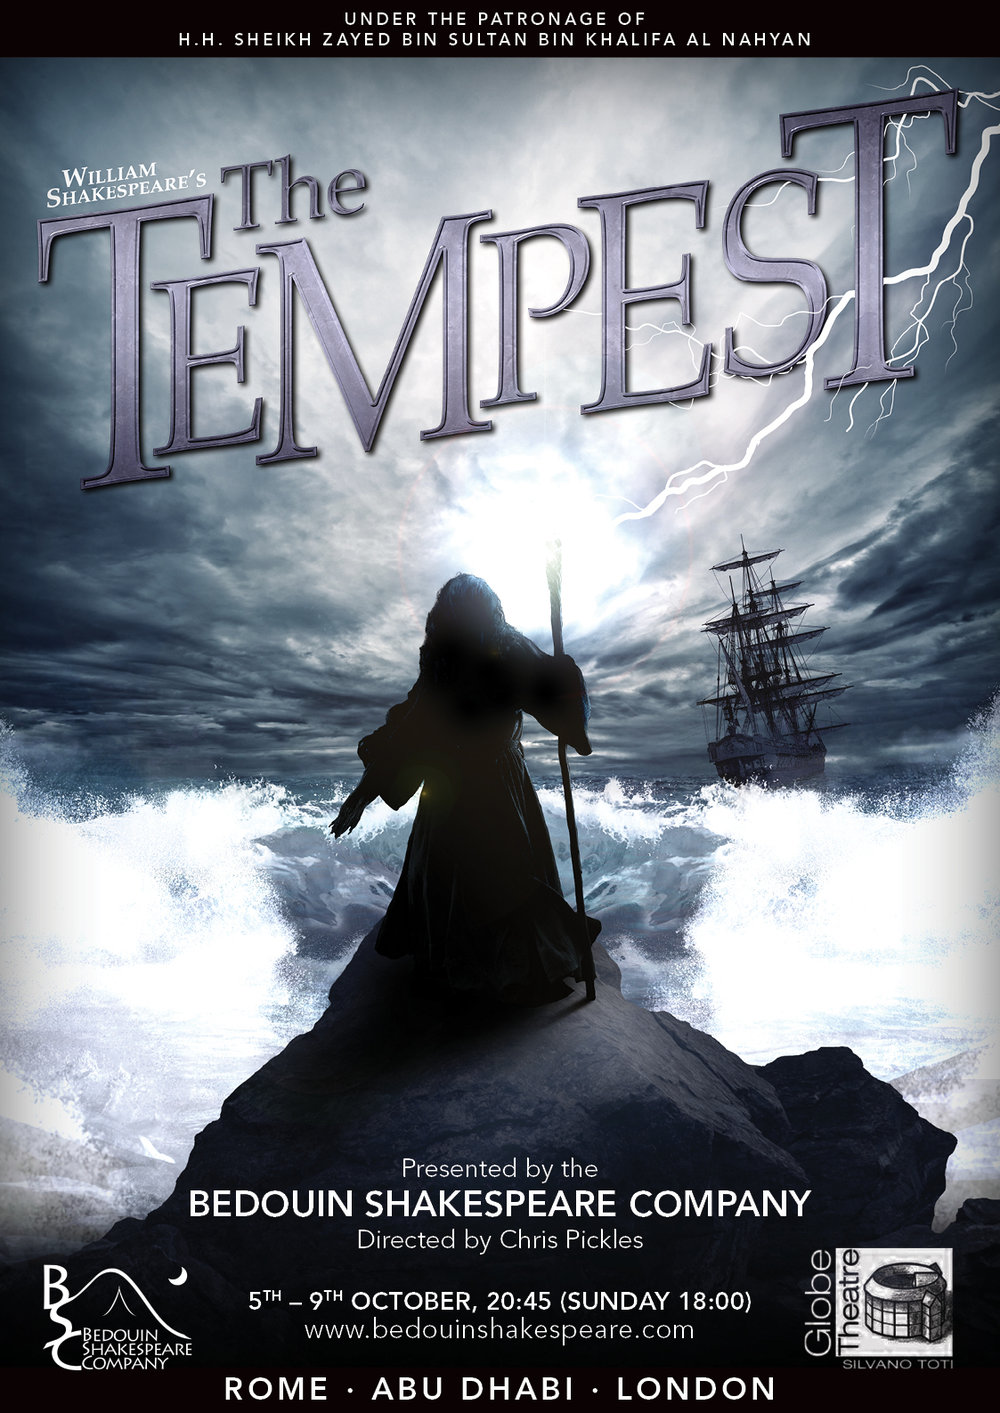 Bedouin Shakespeare Company Tempest Poster 2016